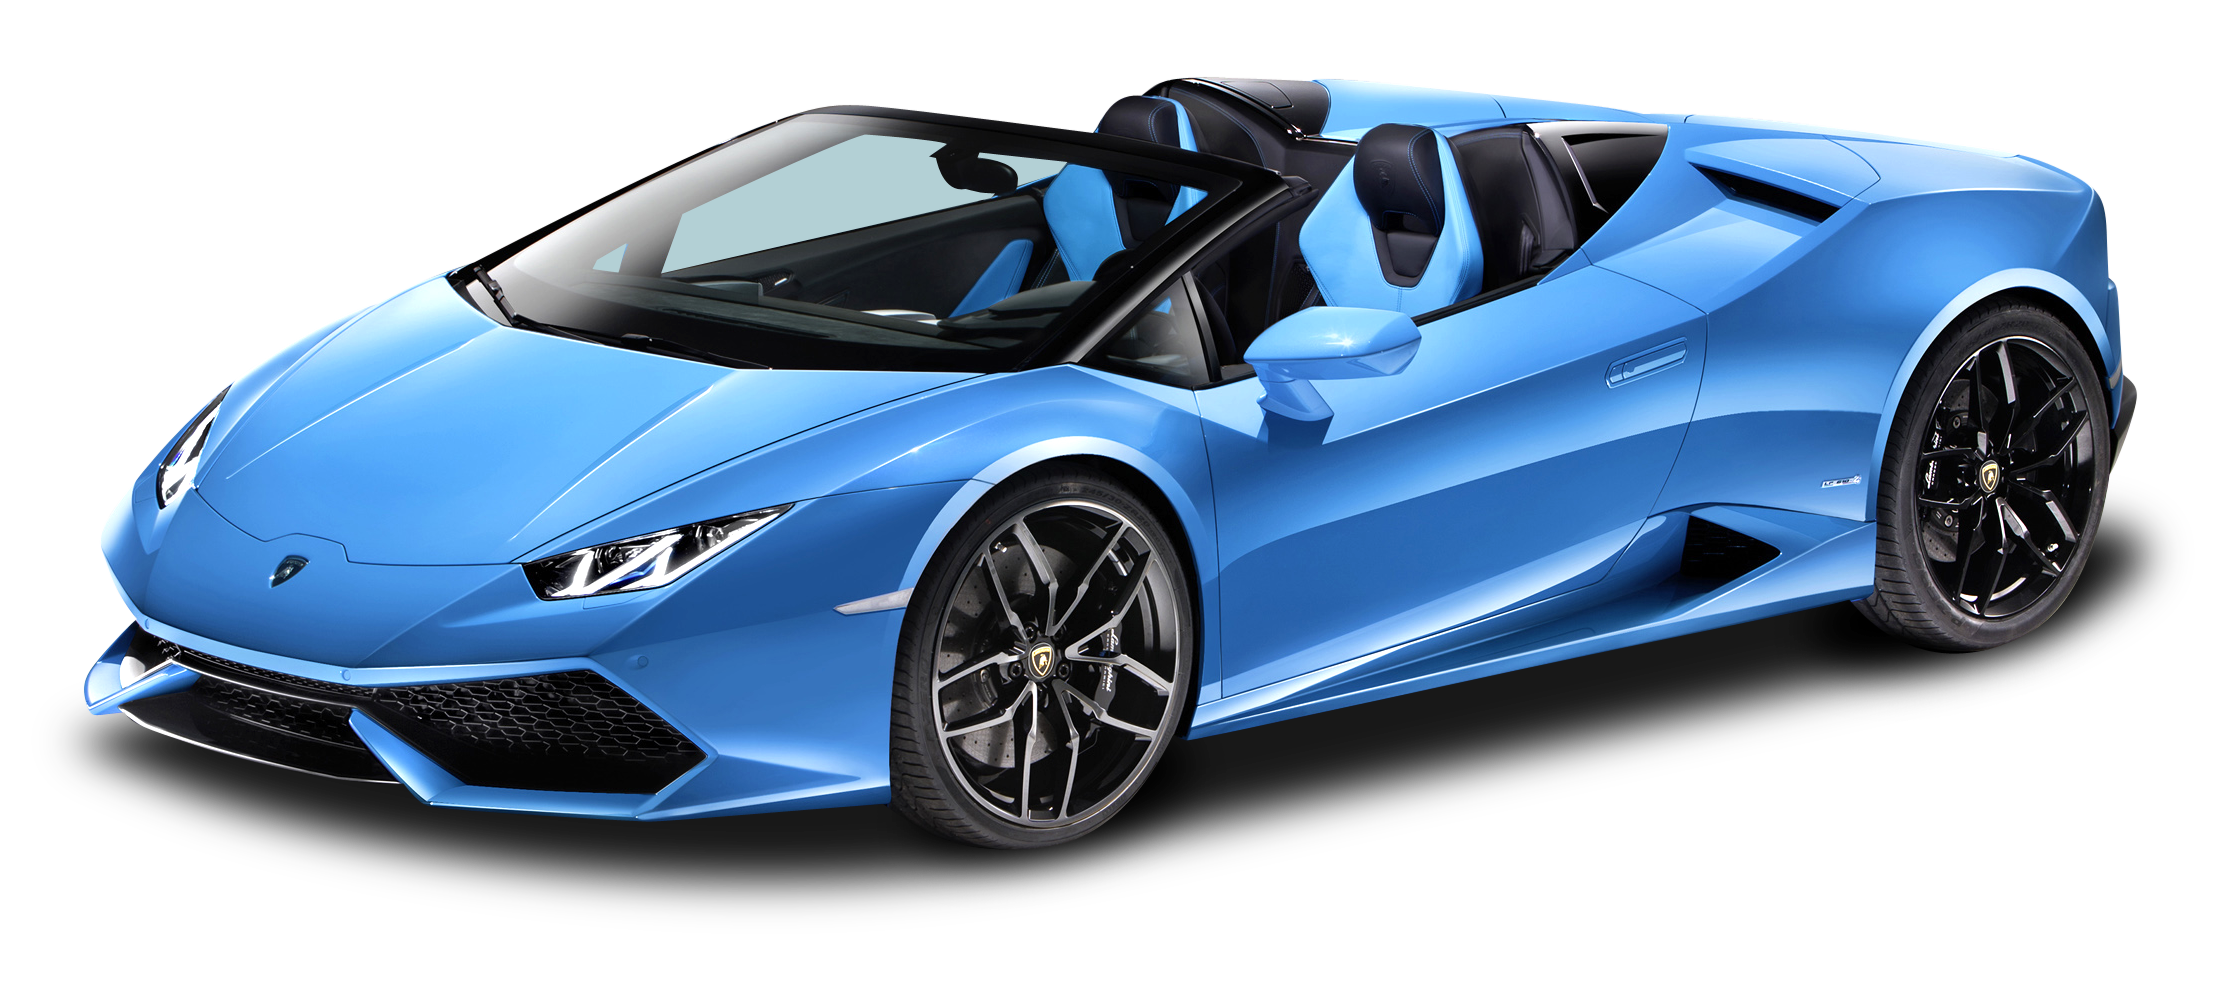 blue lamborghini huracan lp 610 4 spyder car png image pngpix. Black Bedroom Furniture Sets. Home Design Ideas